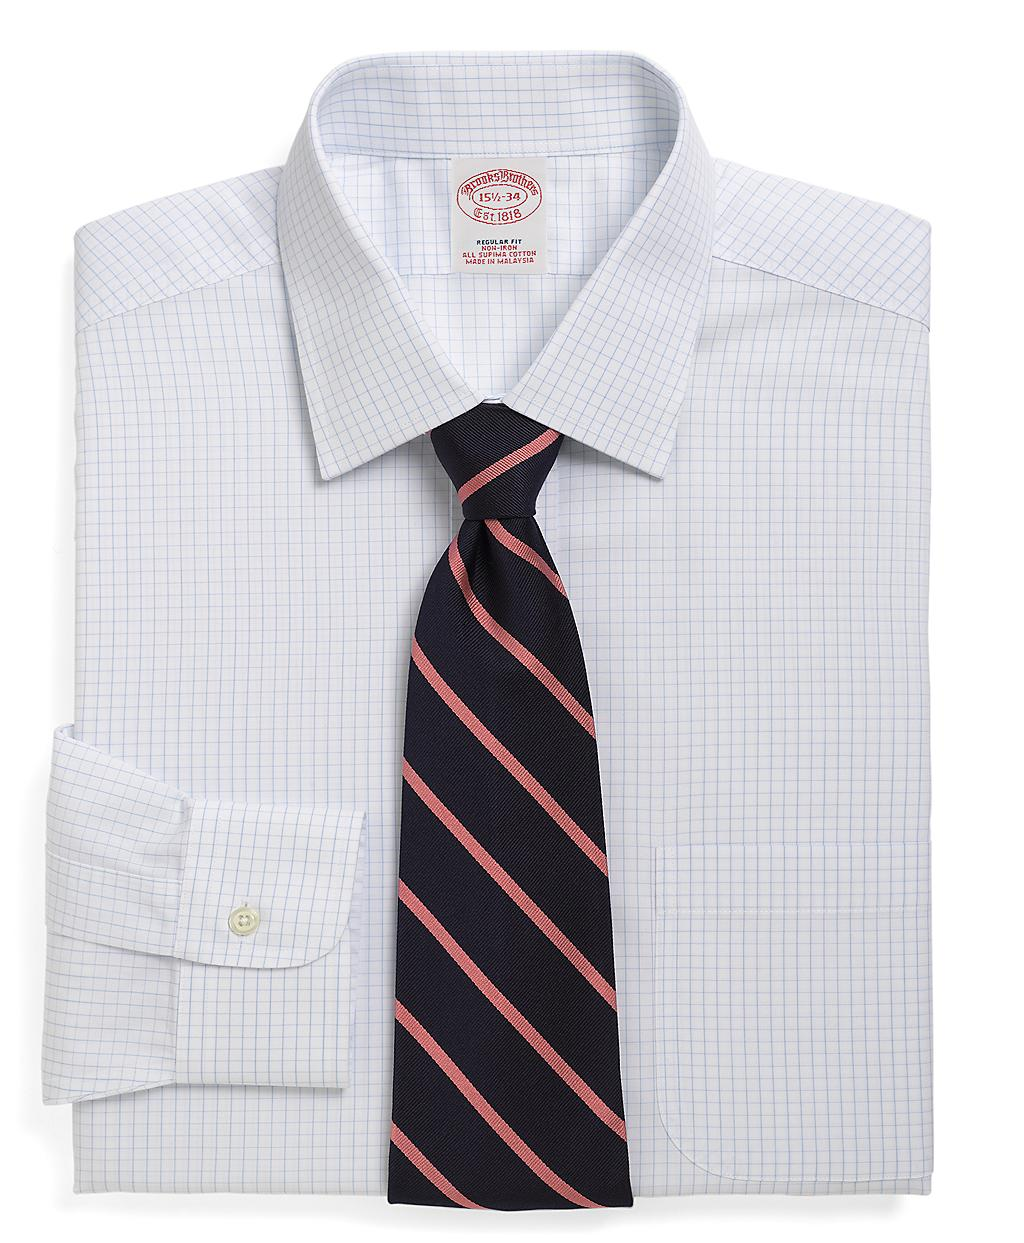 Brooks brothers non iron milano fit medium check dress for Brooks brothers dress shirt fit